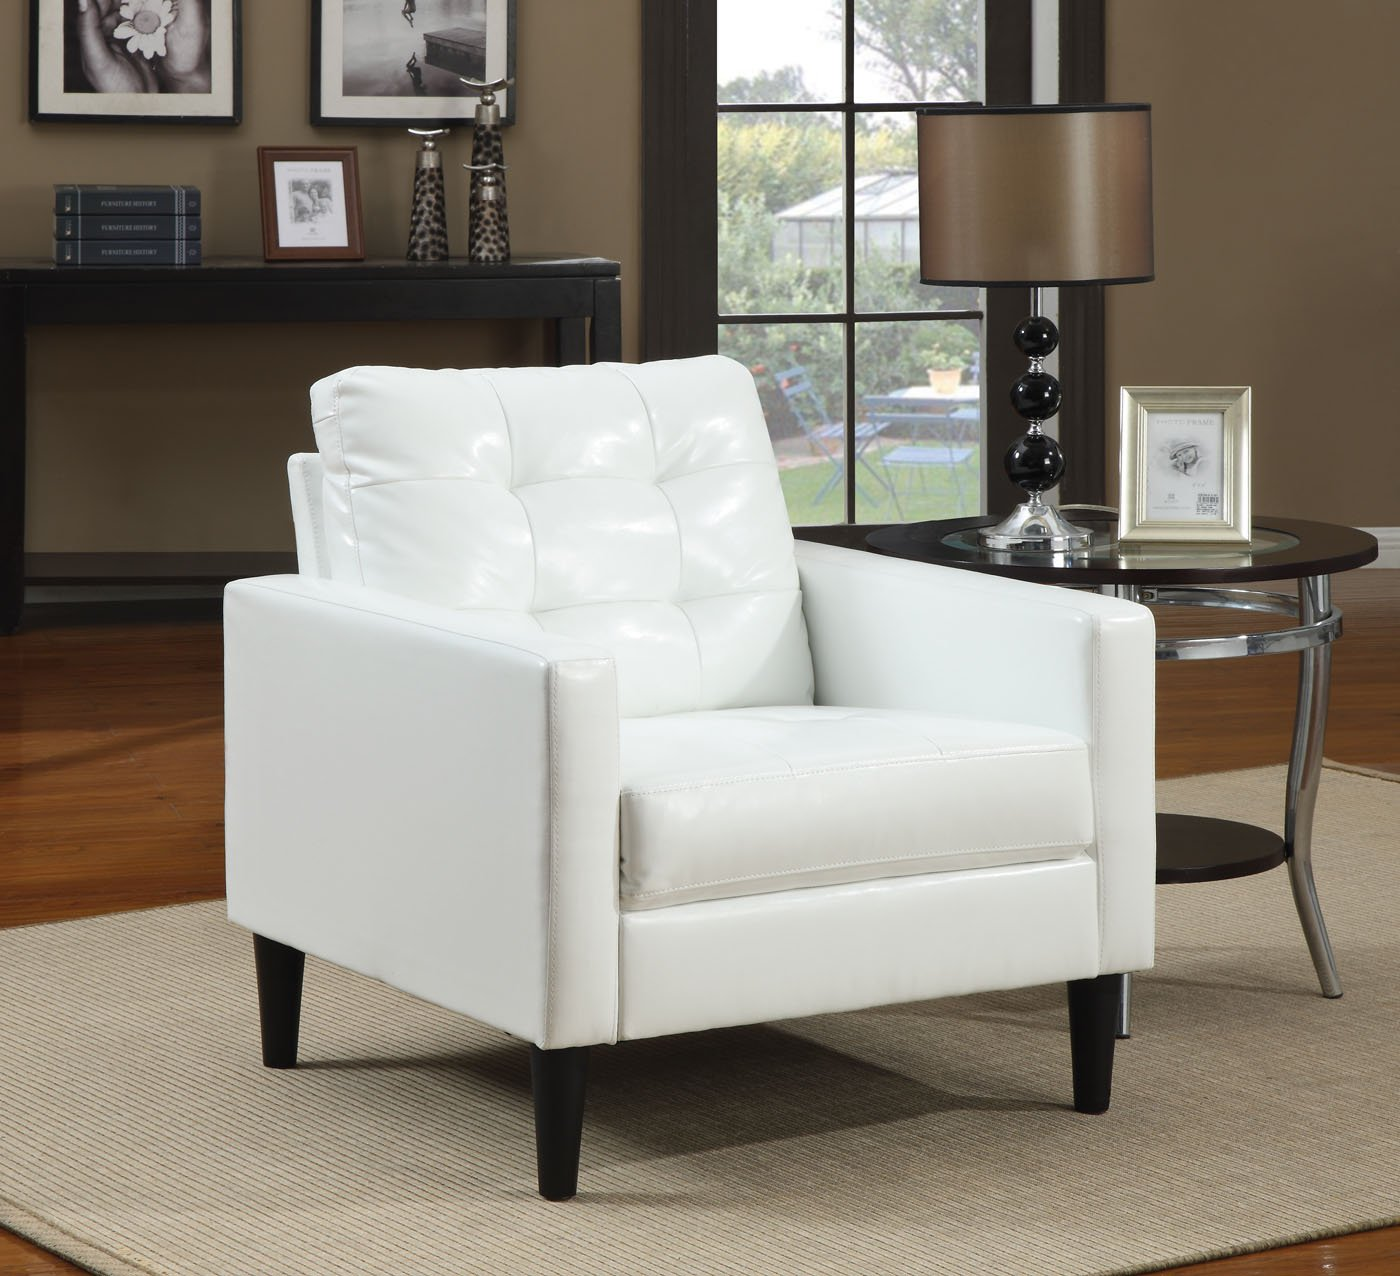 armchairs for living room. Amazon com  ACME Balin White Faux Leather Accent Chair Kitchen Dining